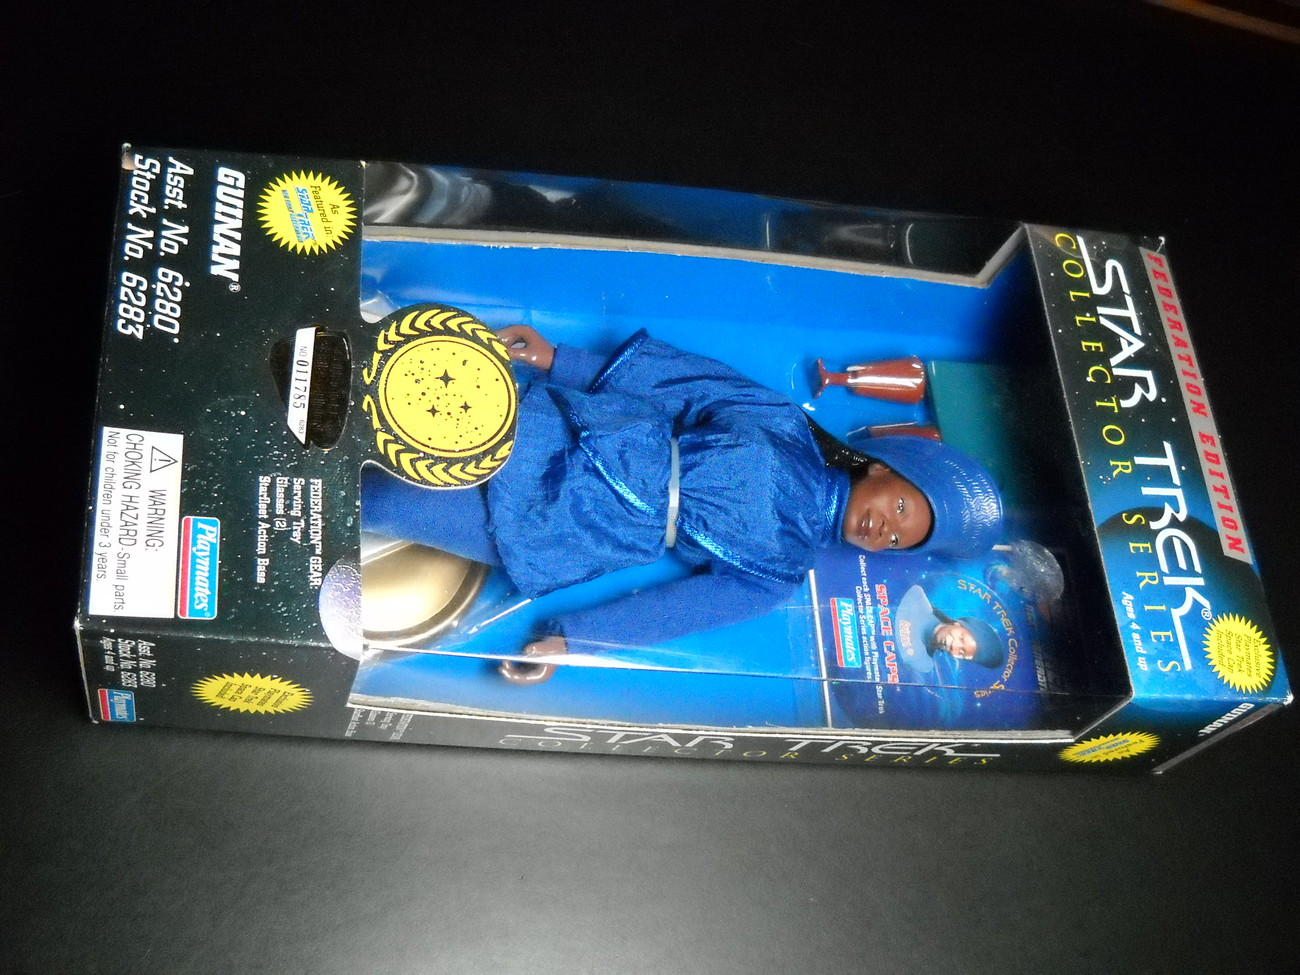 Toy star trek playmates federation edition guinan 9 inch 1995 boxed sealed 01